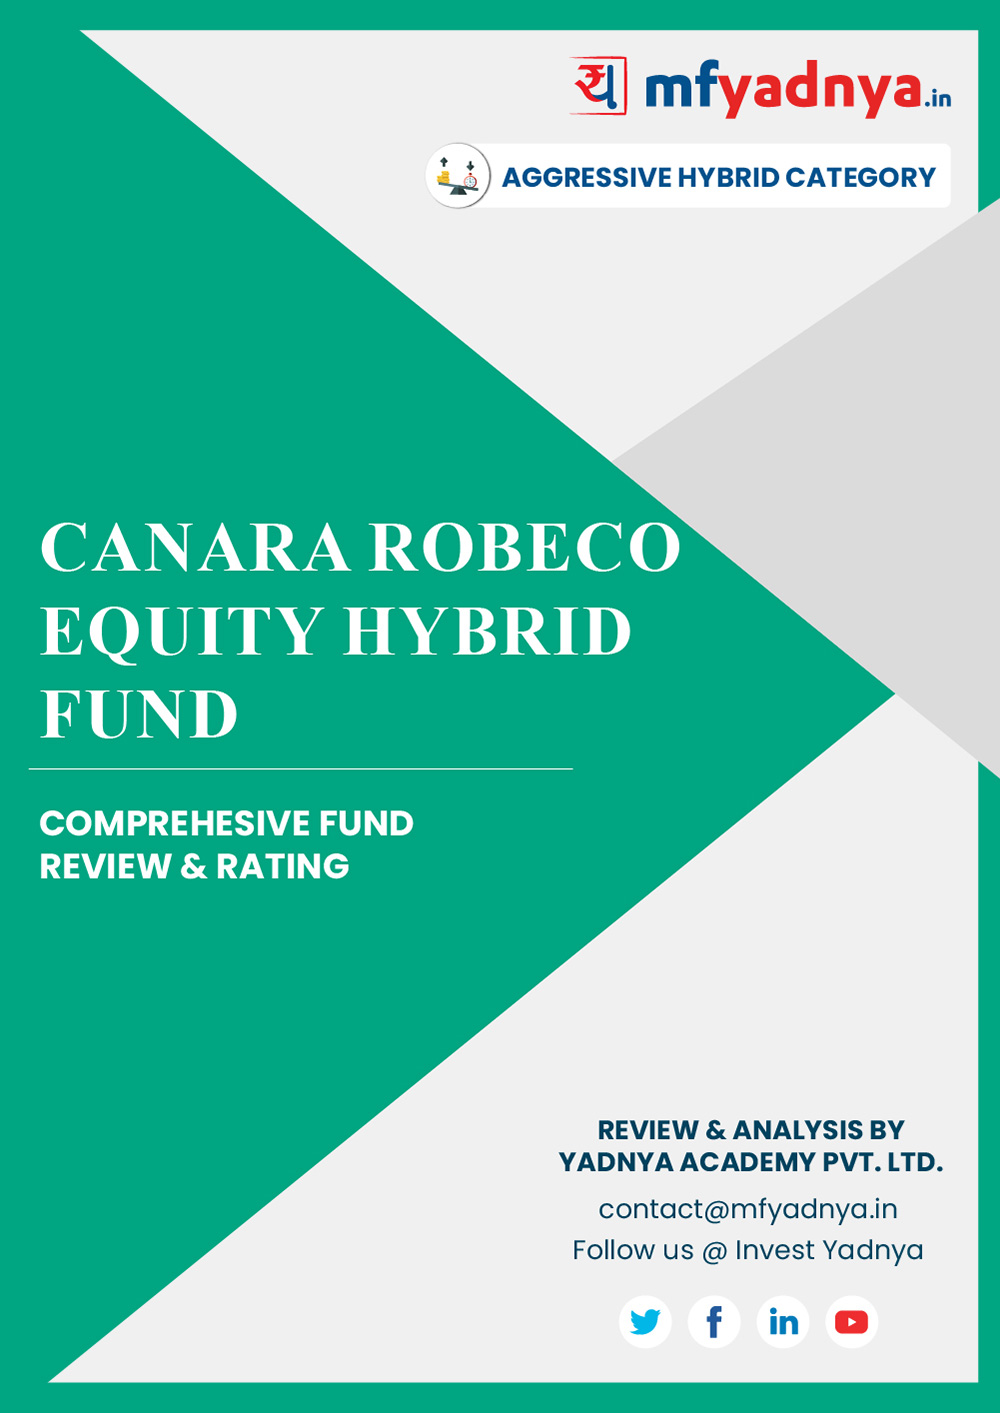 This e-book offers a comprehensive mutual fund review of Canara Robeco Equity Fund for hybrid category. It reviews the fund's return, ratio, allocation etc. ✔ Detailed Mutual Fund Analysis ✔ Latest Research Reports